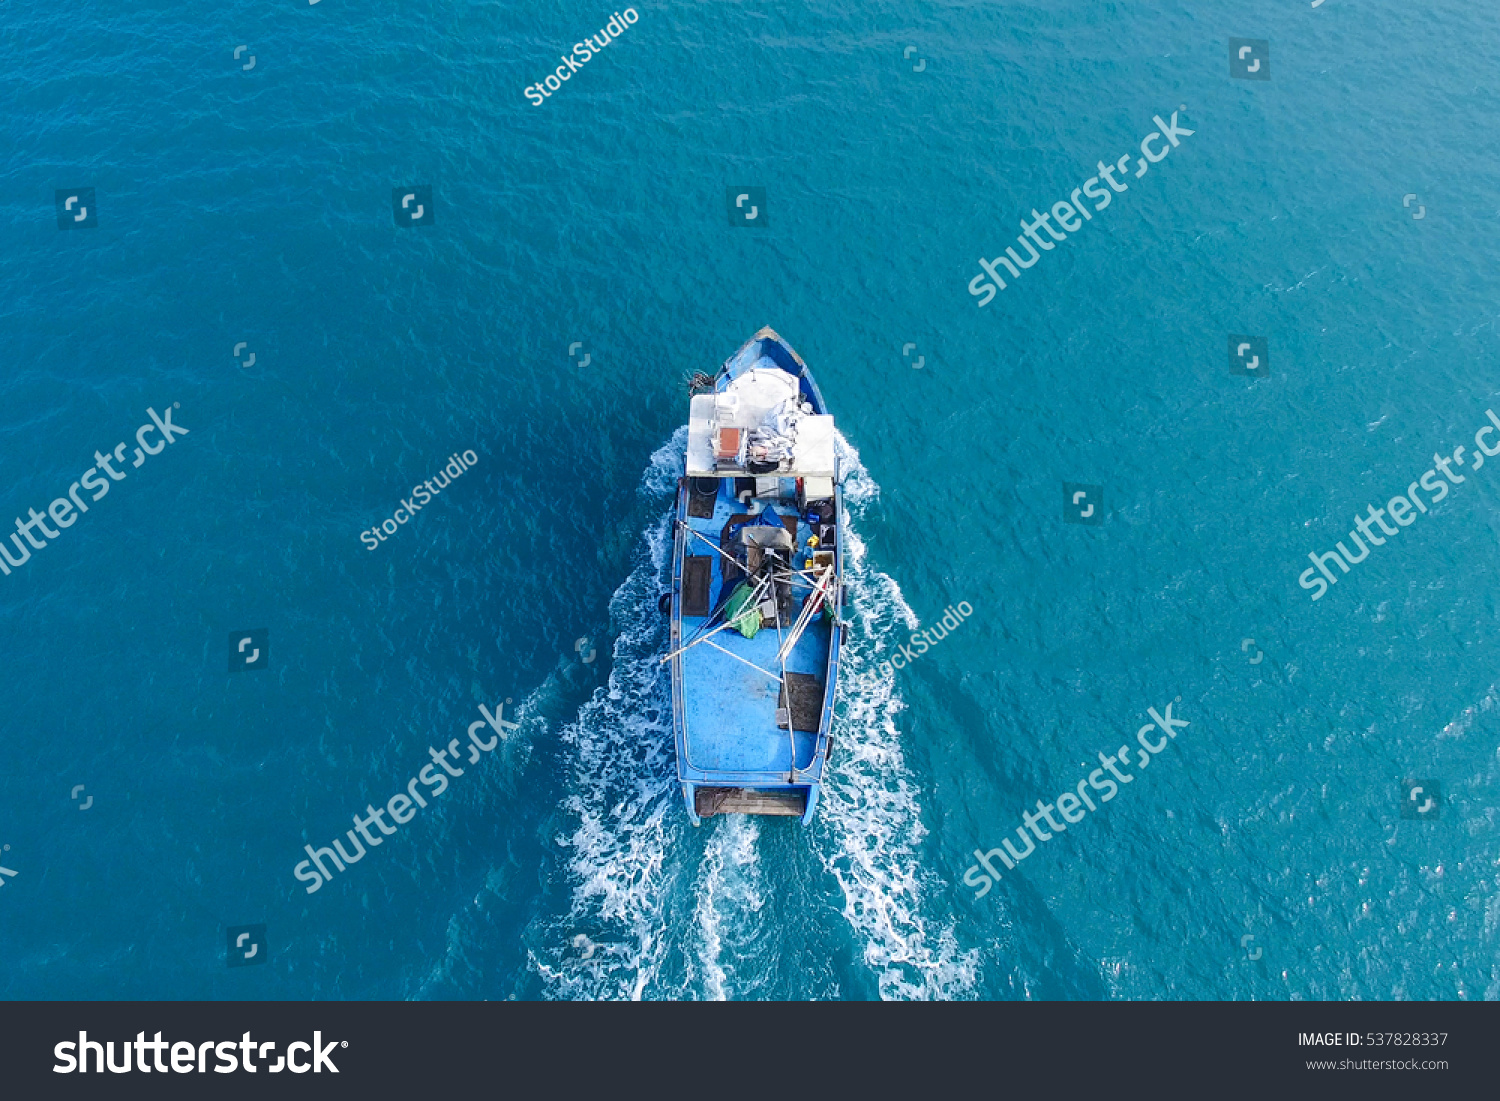 Small Fishing Boat Sea Aerial Image Stock Photo 537828337 ...